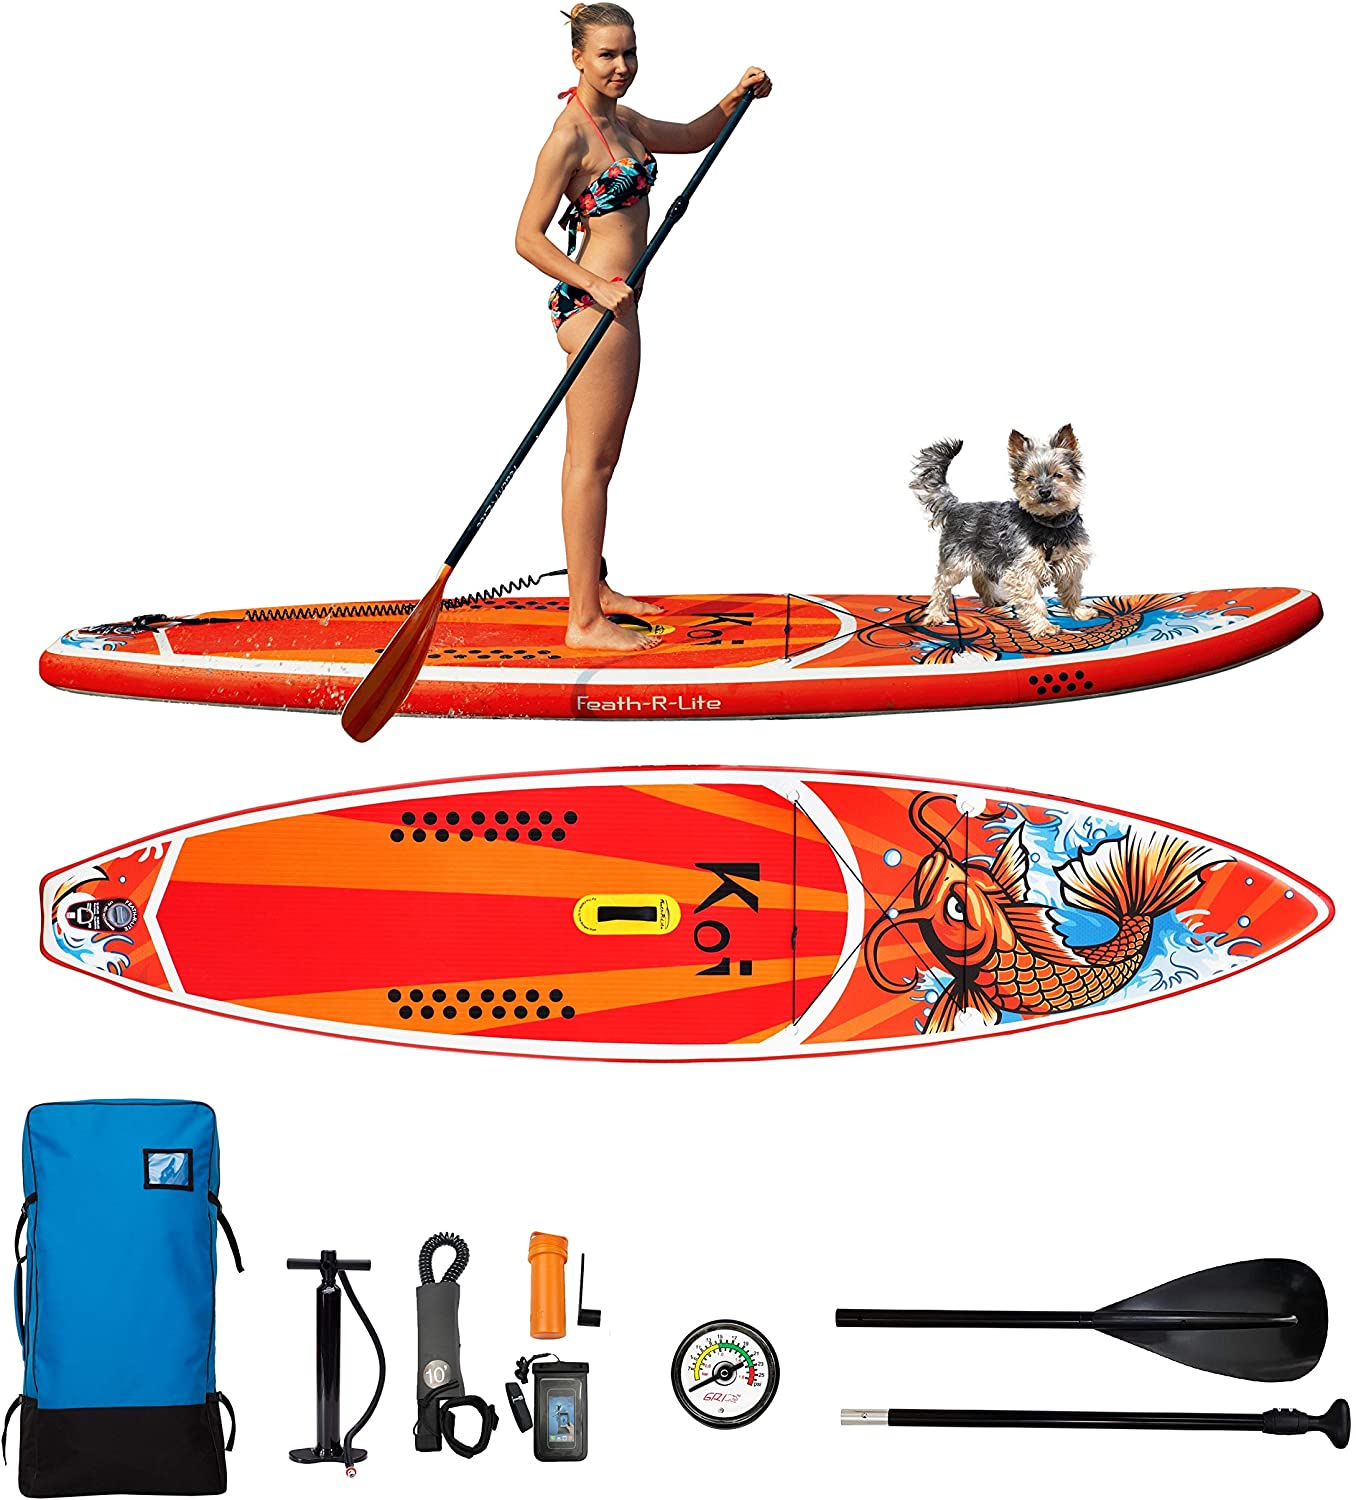 FAYEAN Inflatable Stand Up Paddle Board Cruise Thick Includes Pump, Paddle, Backpack, Coil Leash,Fin and Universal Waterproof Case